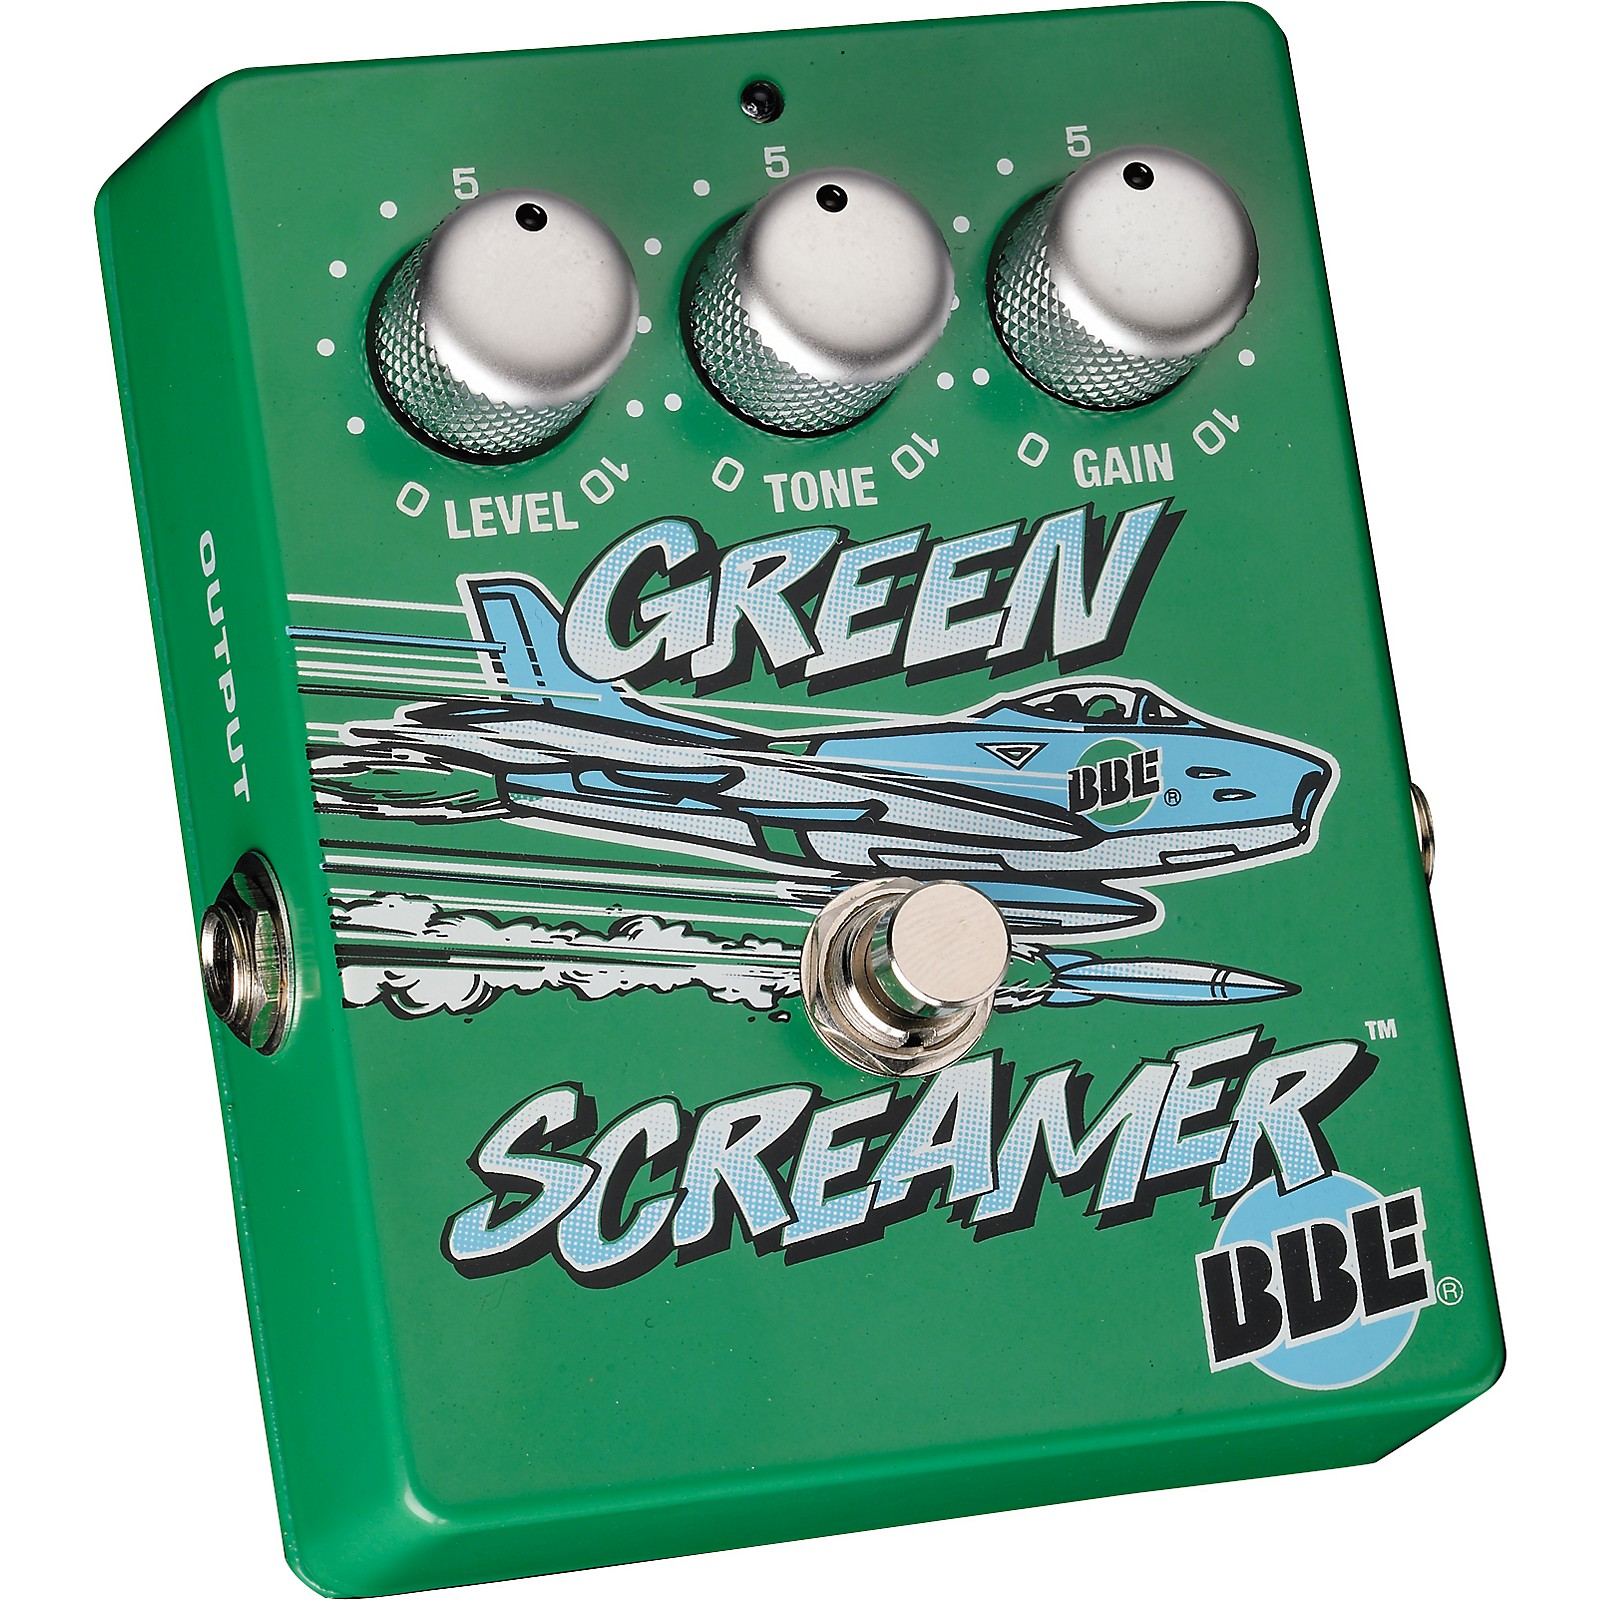 BBE Green Screamer Vintage Overdrive Guitar Effects Pedal